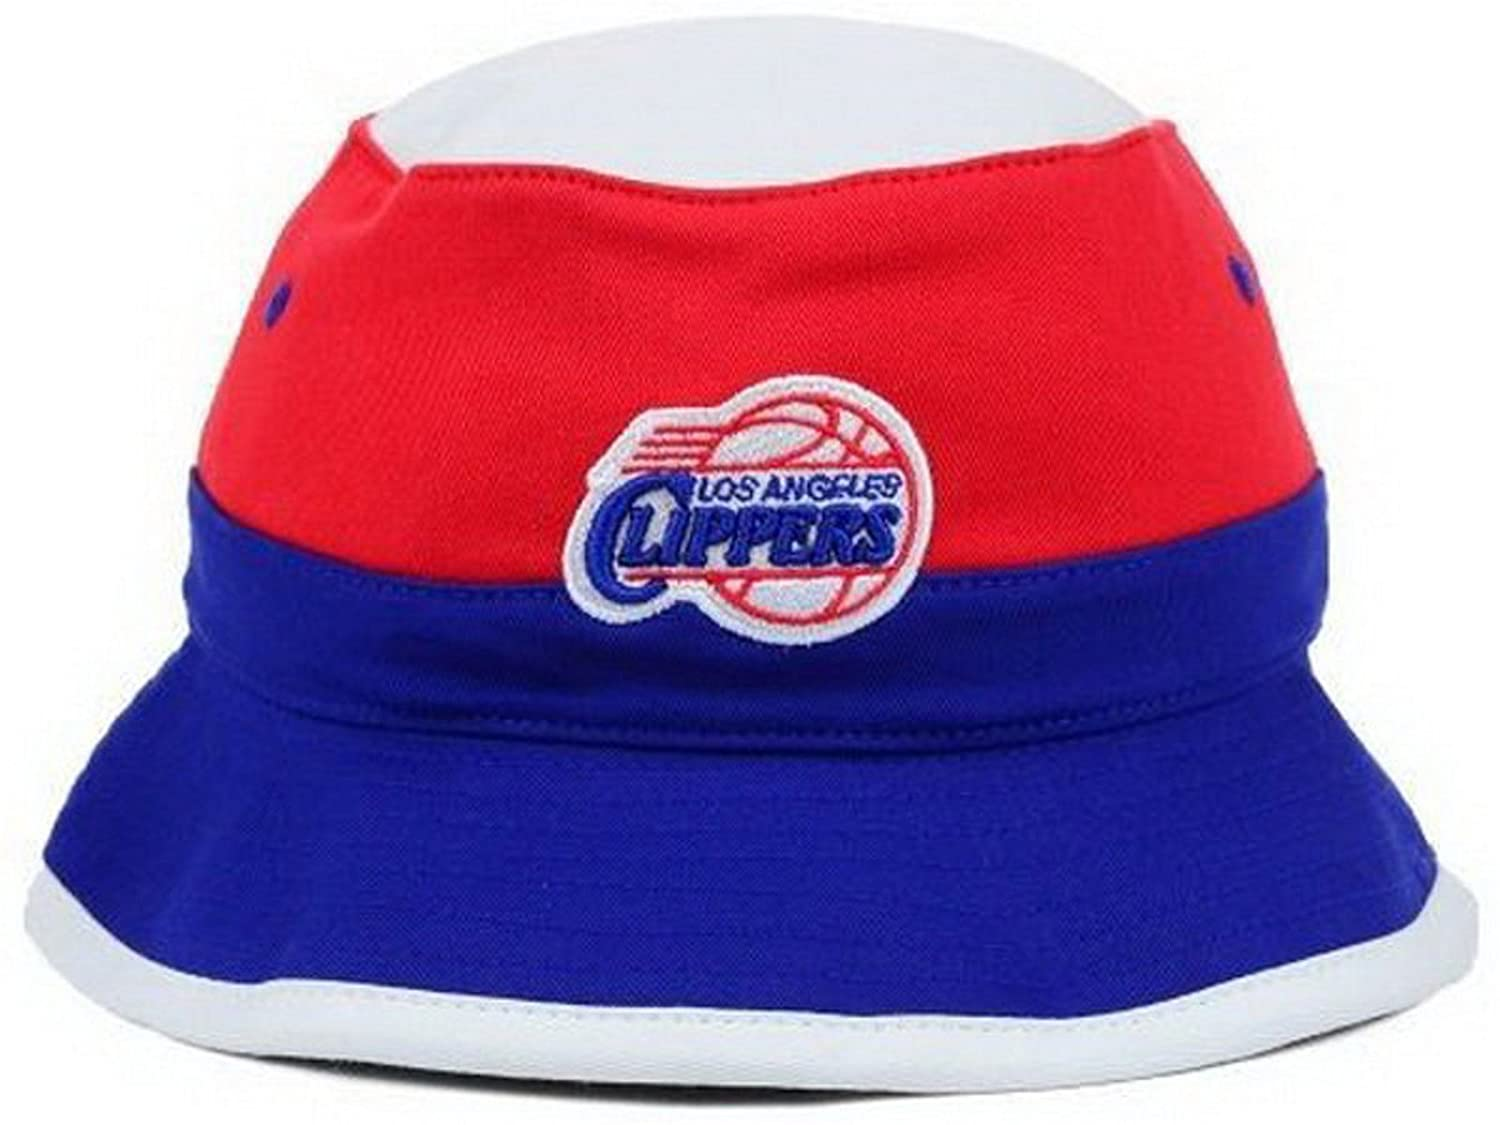 840380b3979 Los Angeles Clippers Bucket Hat Football Sport Hat Cap for Men and Women  (Red)  Amazon.co.uk  Sports   Outdoors